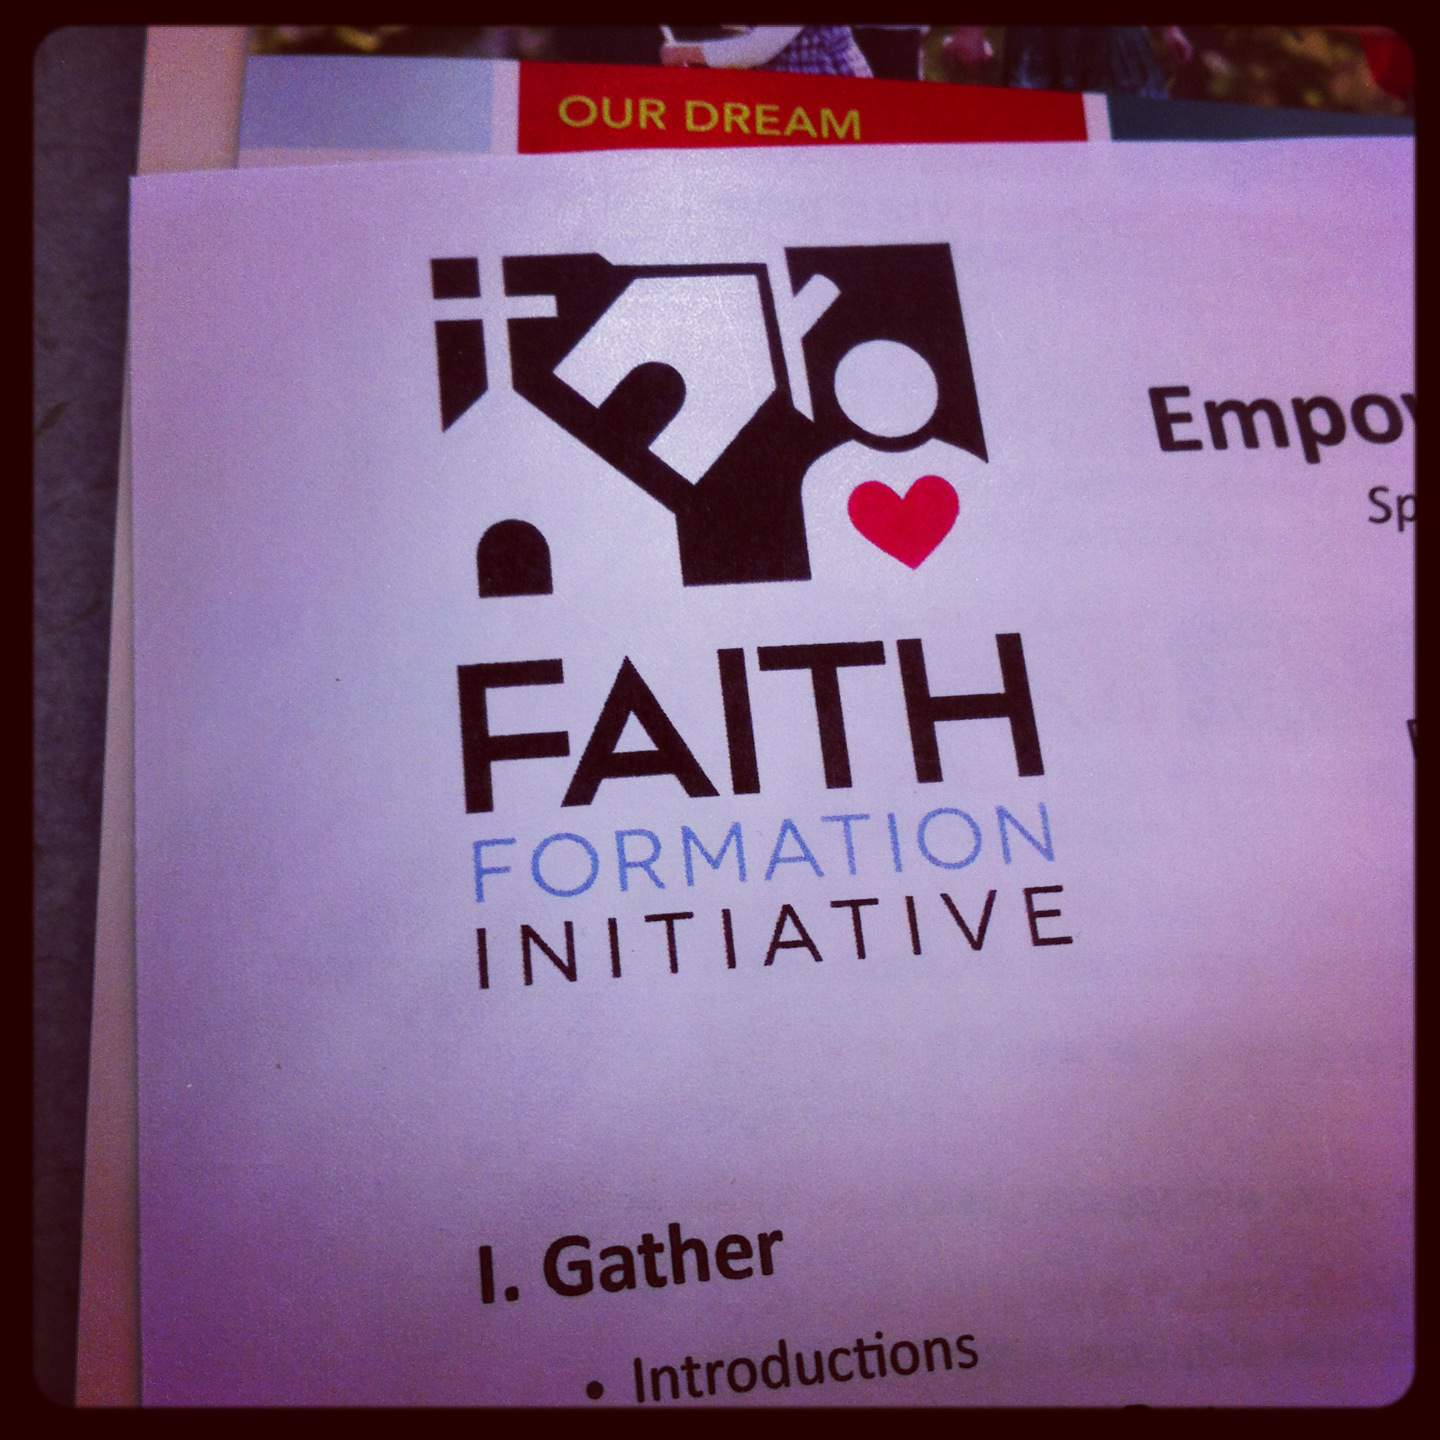 Passing on faith to our children is one of the most important roles a parent has, but how do we go about teaching kids faith? Learn how to cultivate faith in your family with these easy tips.